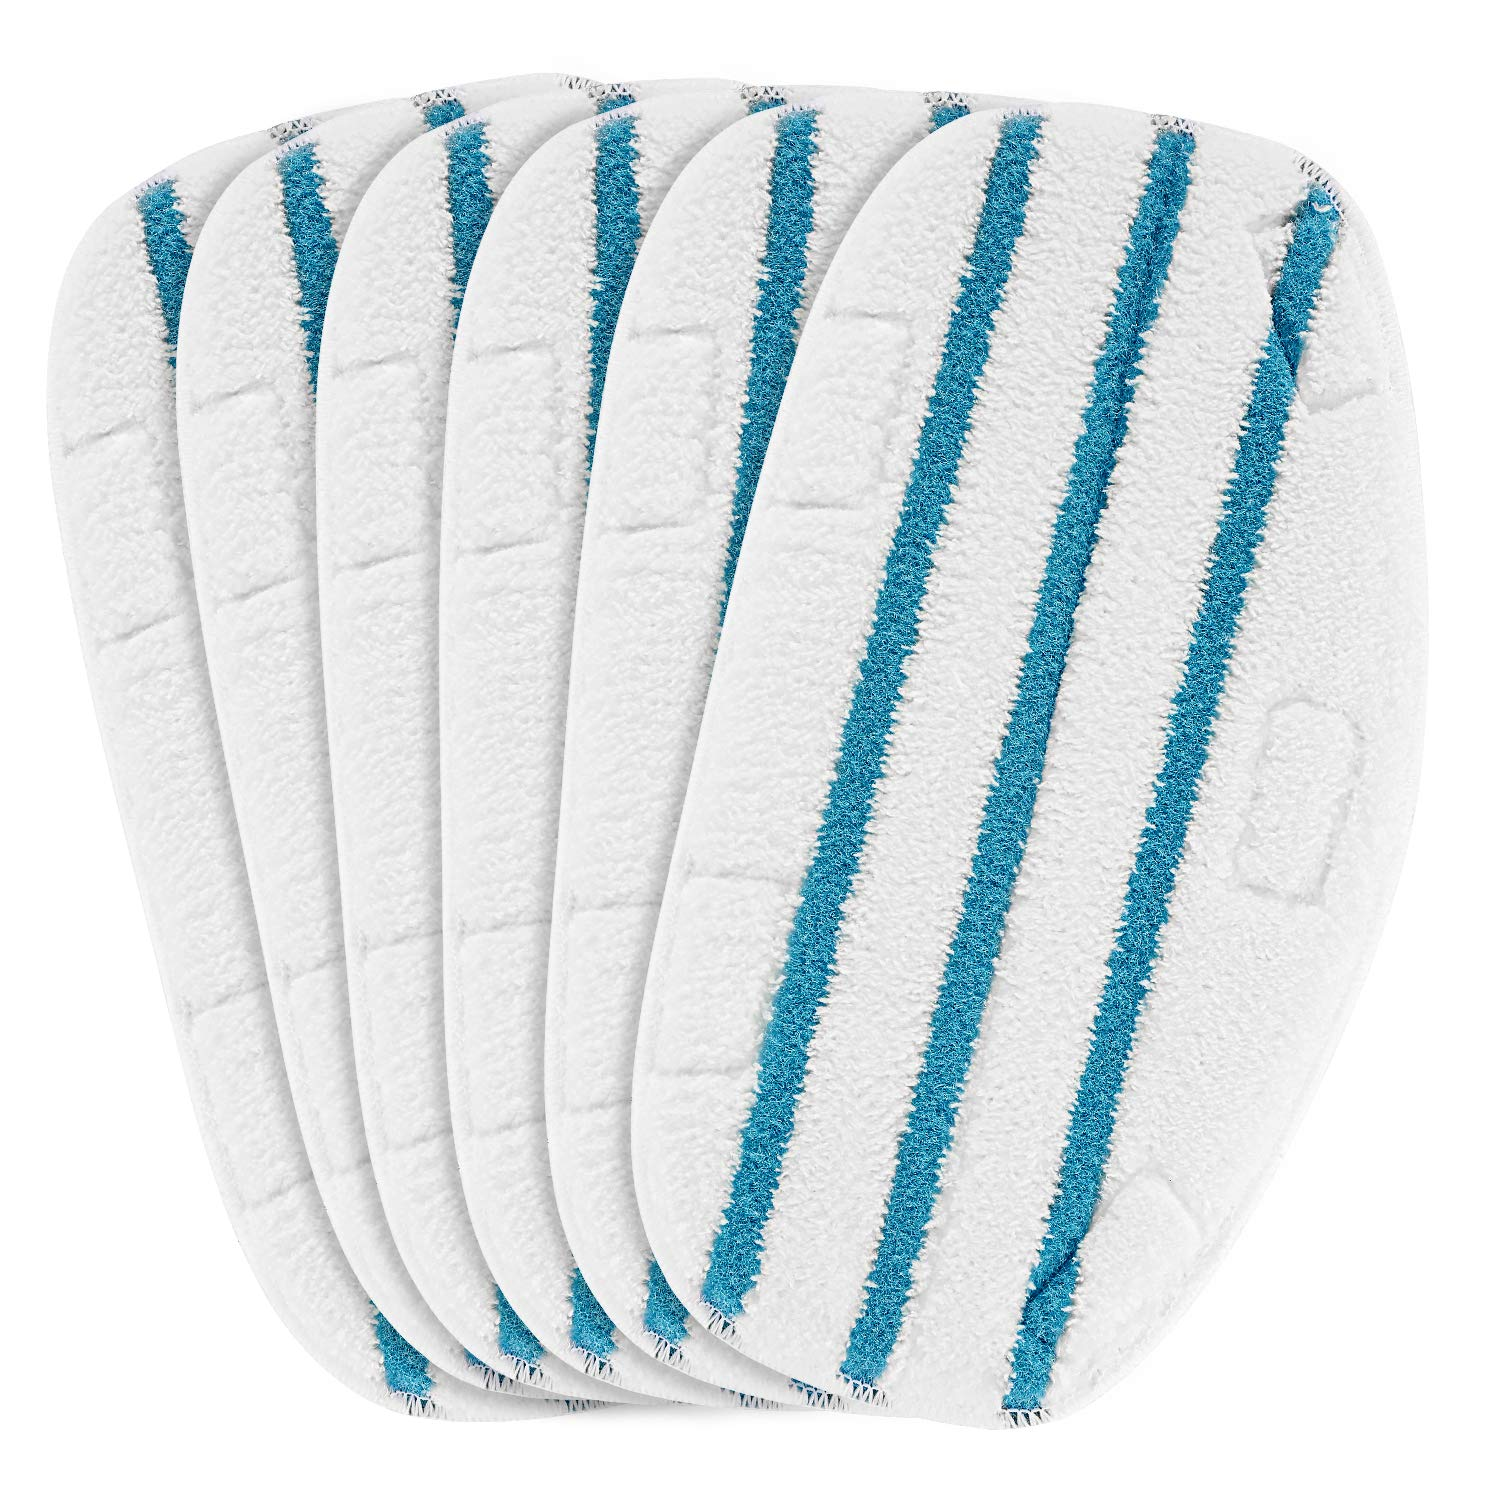 LINNIW 6 Pack Replacement Steam Mop Pads Compatible PurSteam ThermaPro 10-in-1 by LINNIW